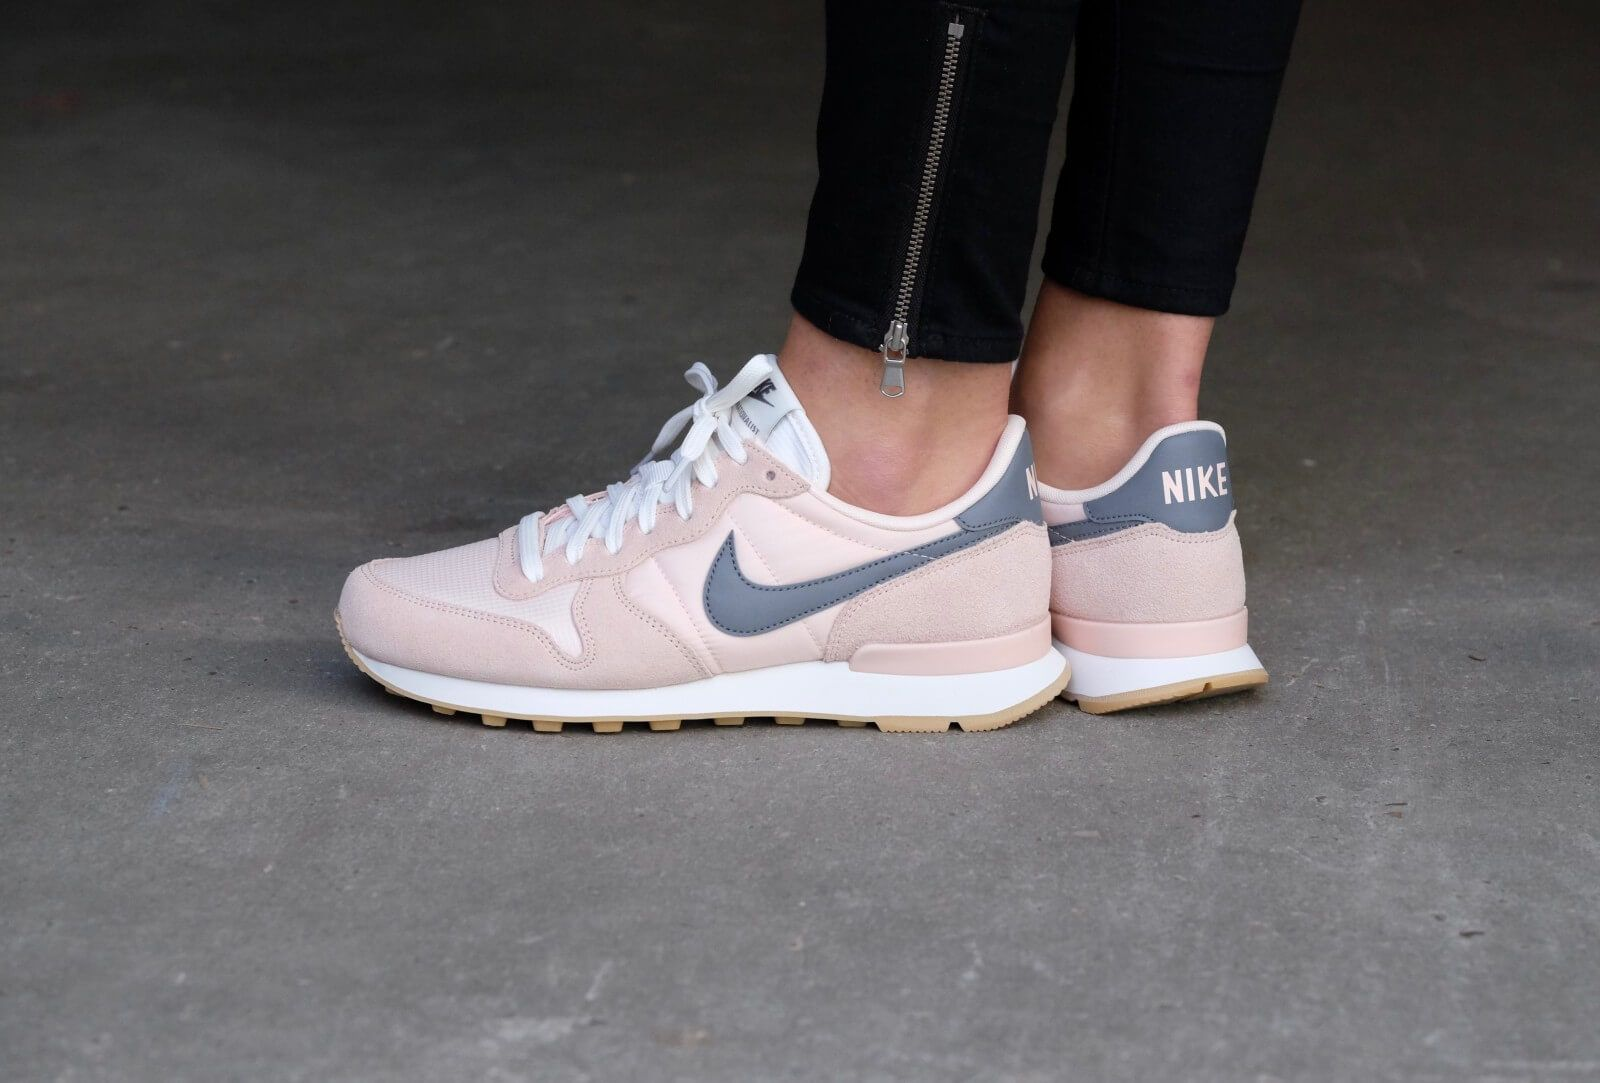 nike wmns internationalist sunset tint / cool grey - summit white